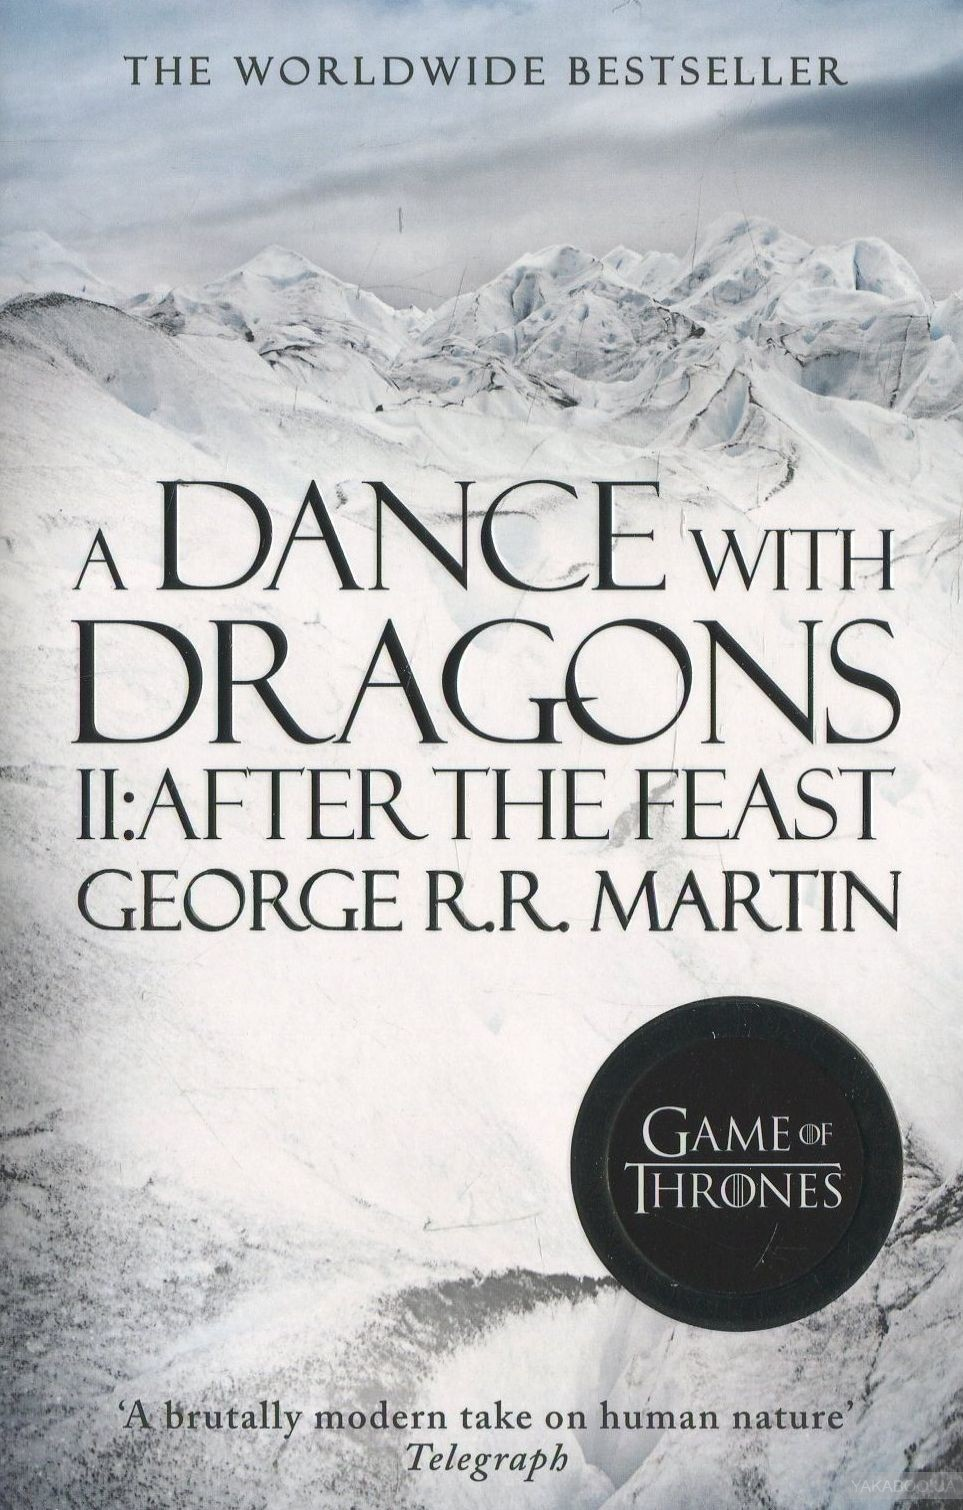 A Song of Ice and Fire. Book 5: A Dance With Dragons. Part 2: After the Feast